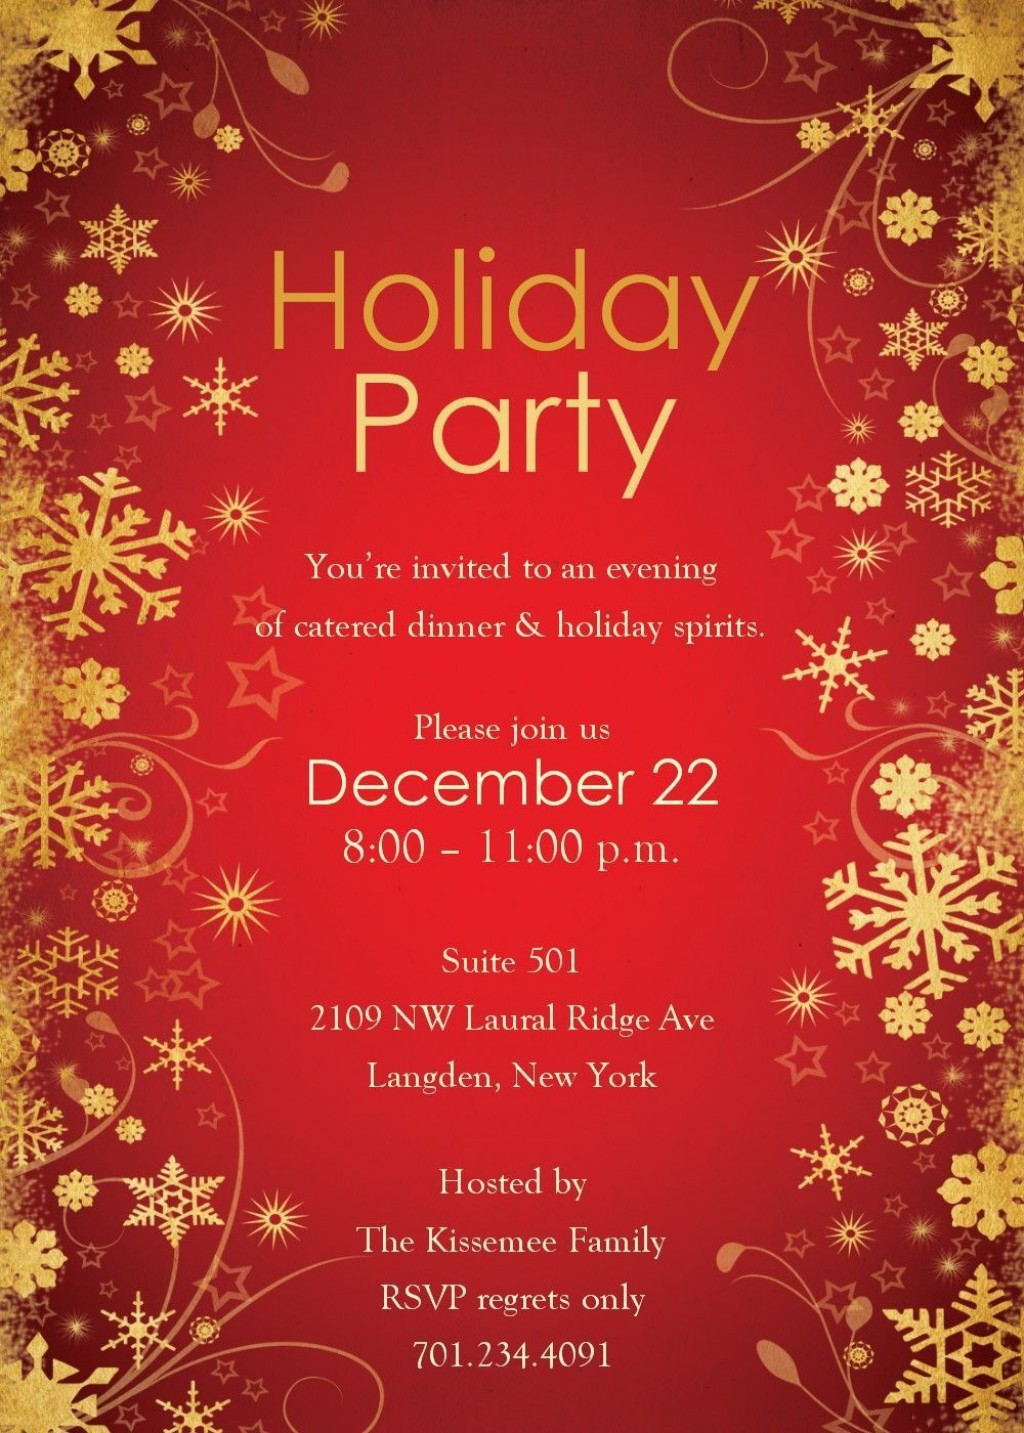 004 Astounding Christma Party Invitation Template Concept  Holiday Download Free PsdLarge